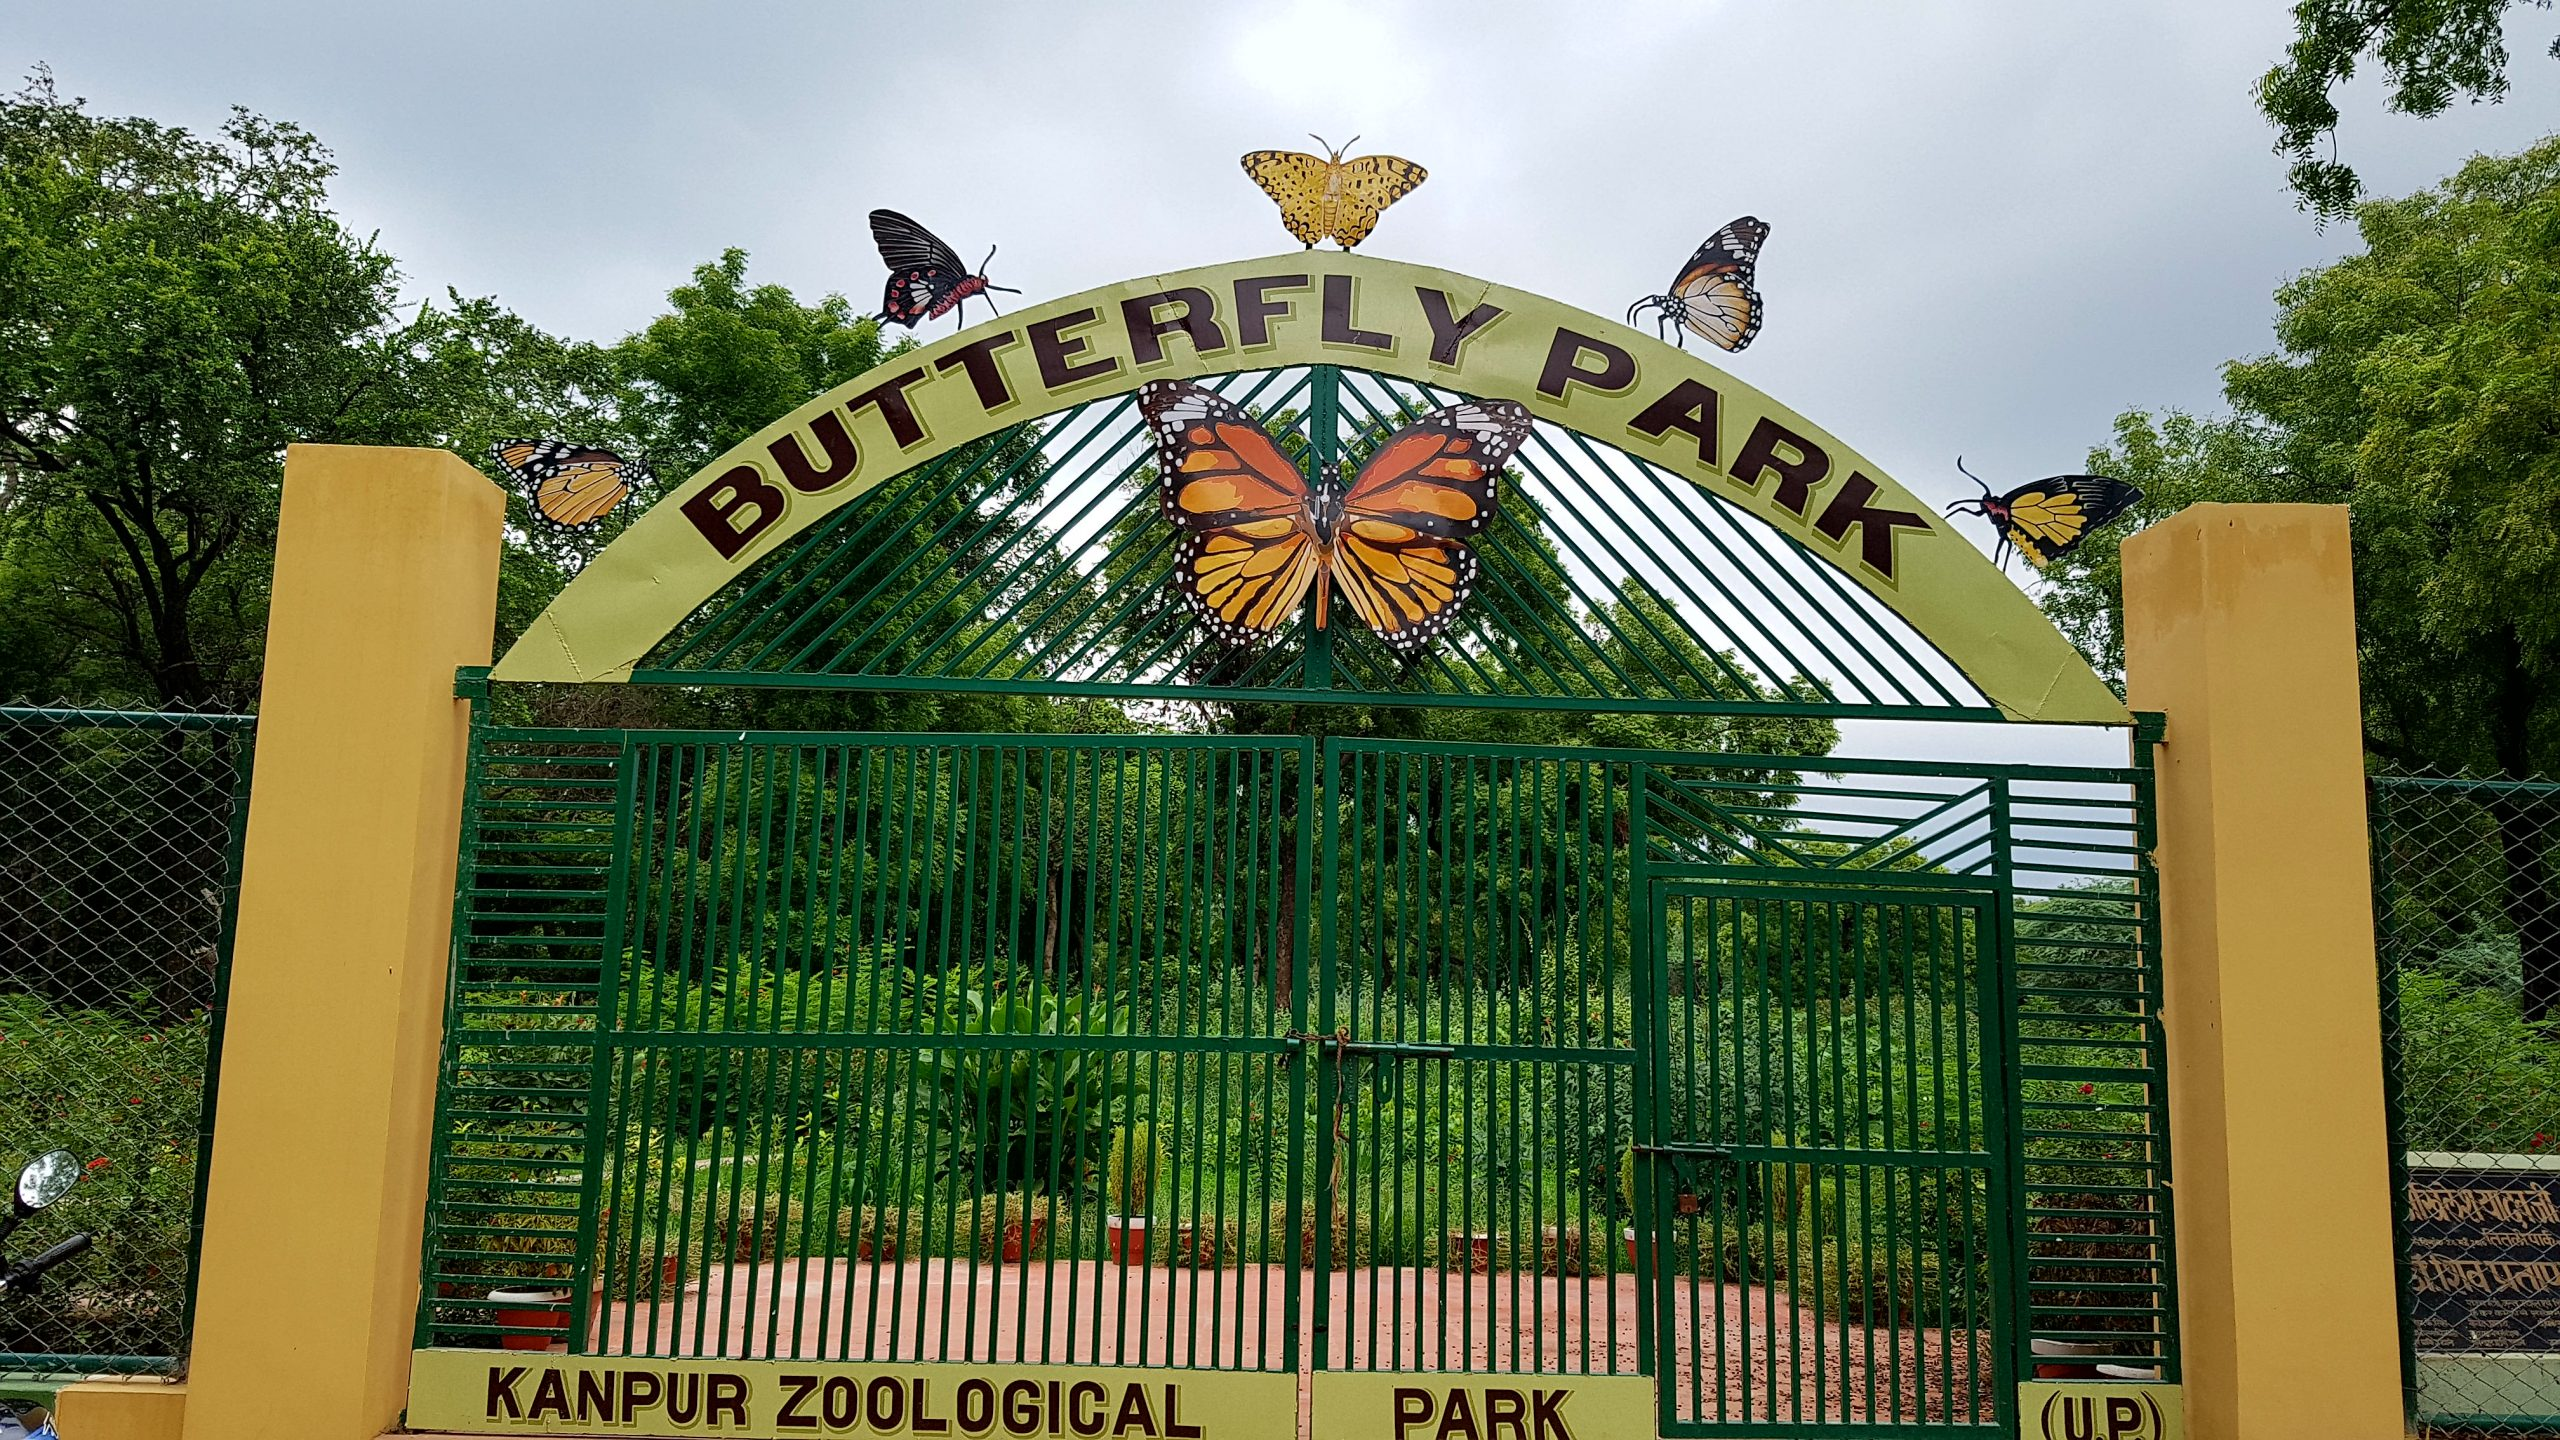 Amazing Place to See in Kanpur-Kanpur Zoo